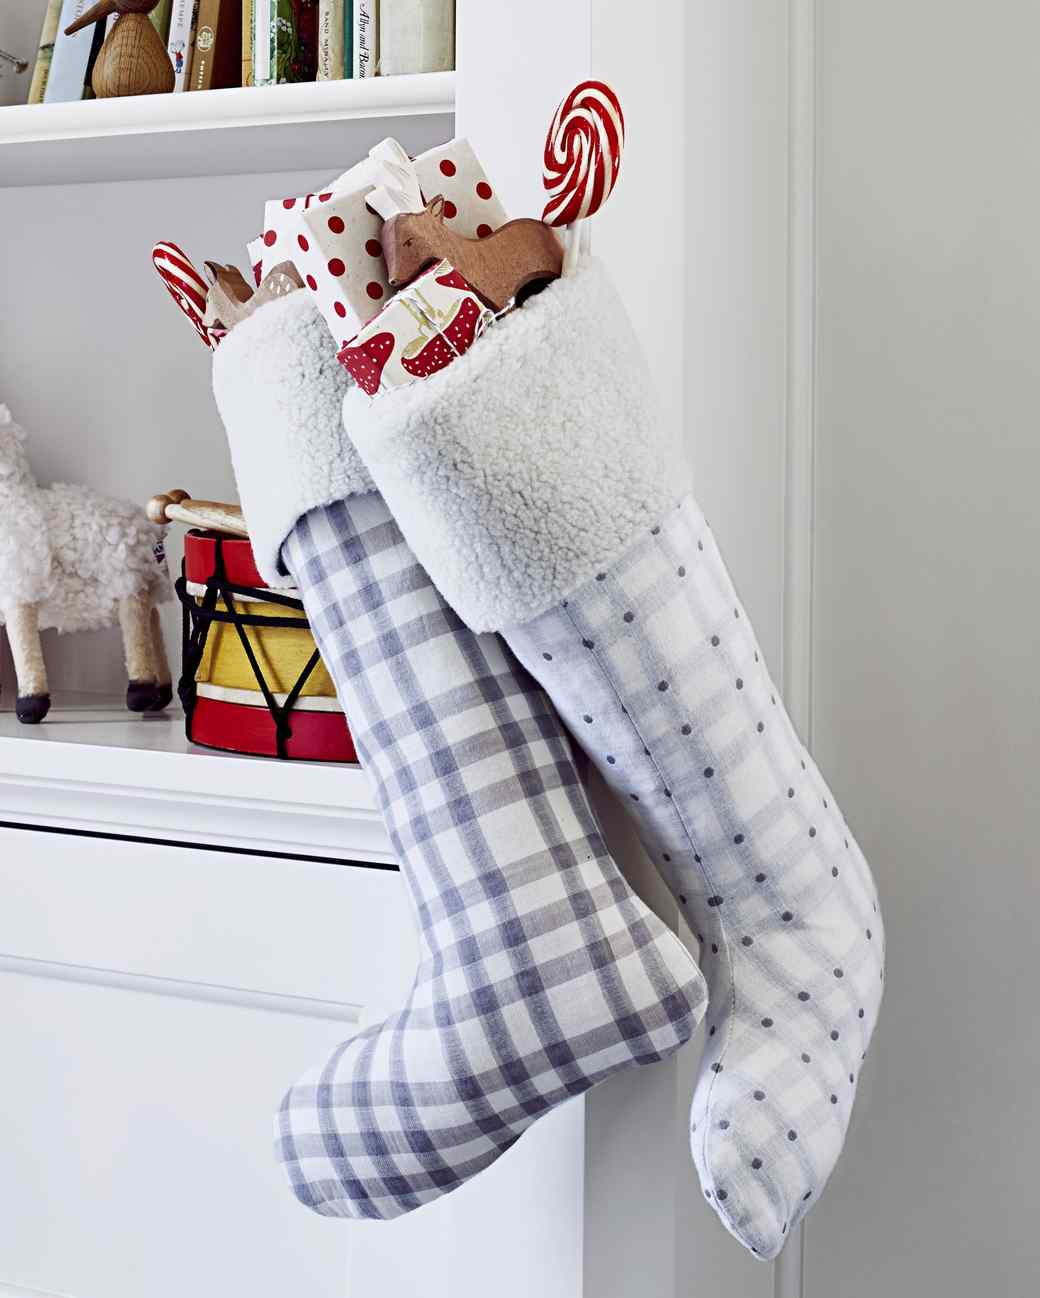 photography - Plaid Christmas Stockings